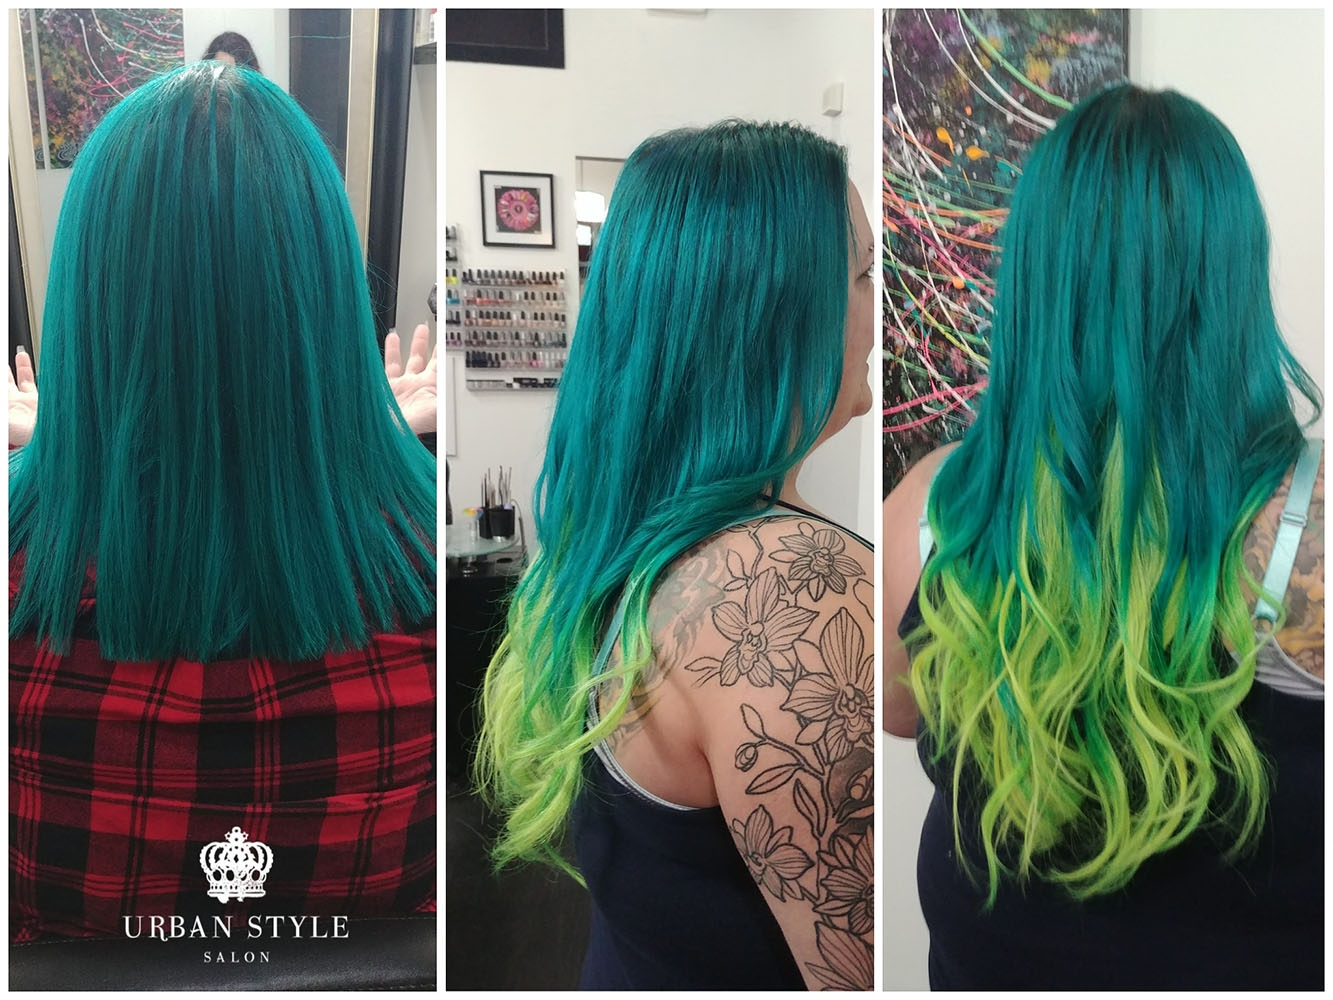 Tape-In Hair Extension Before and After